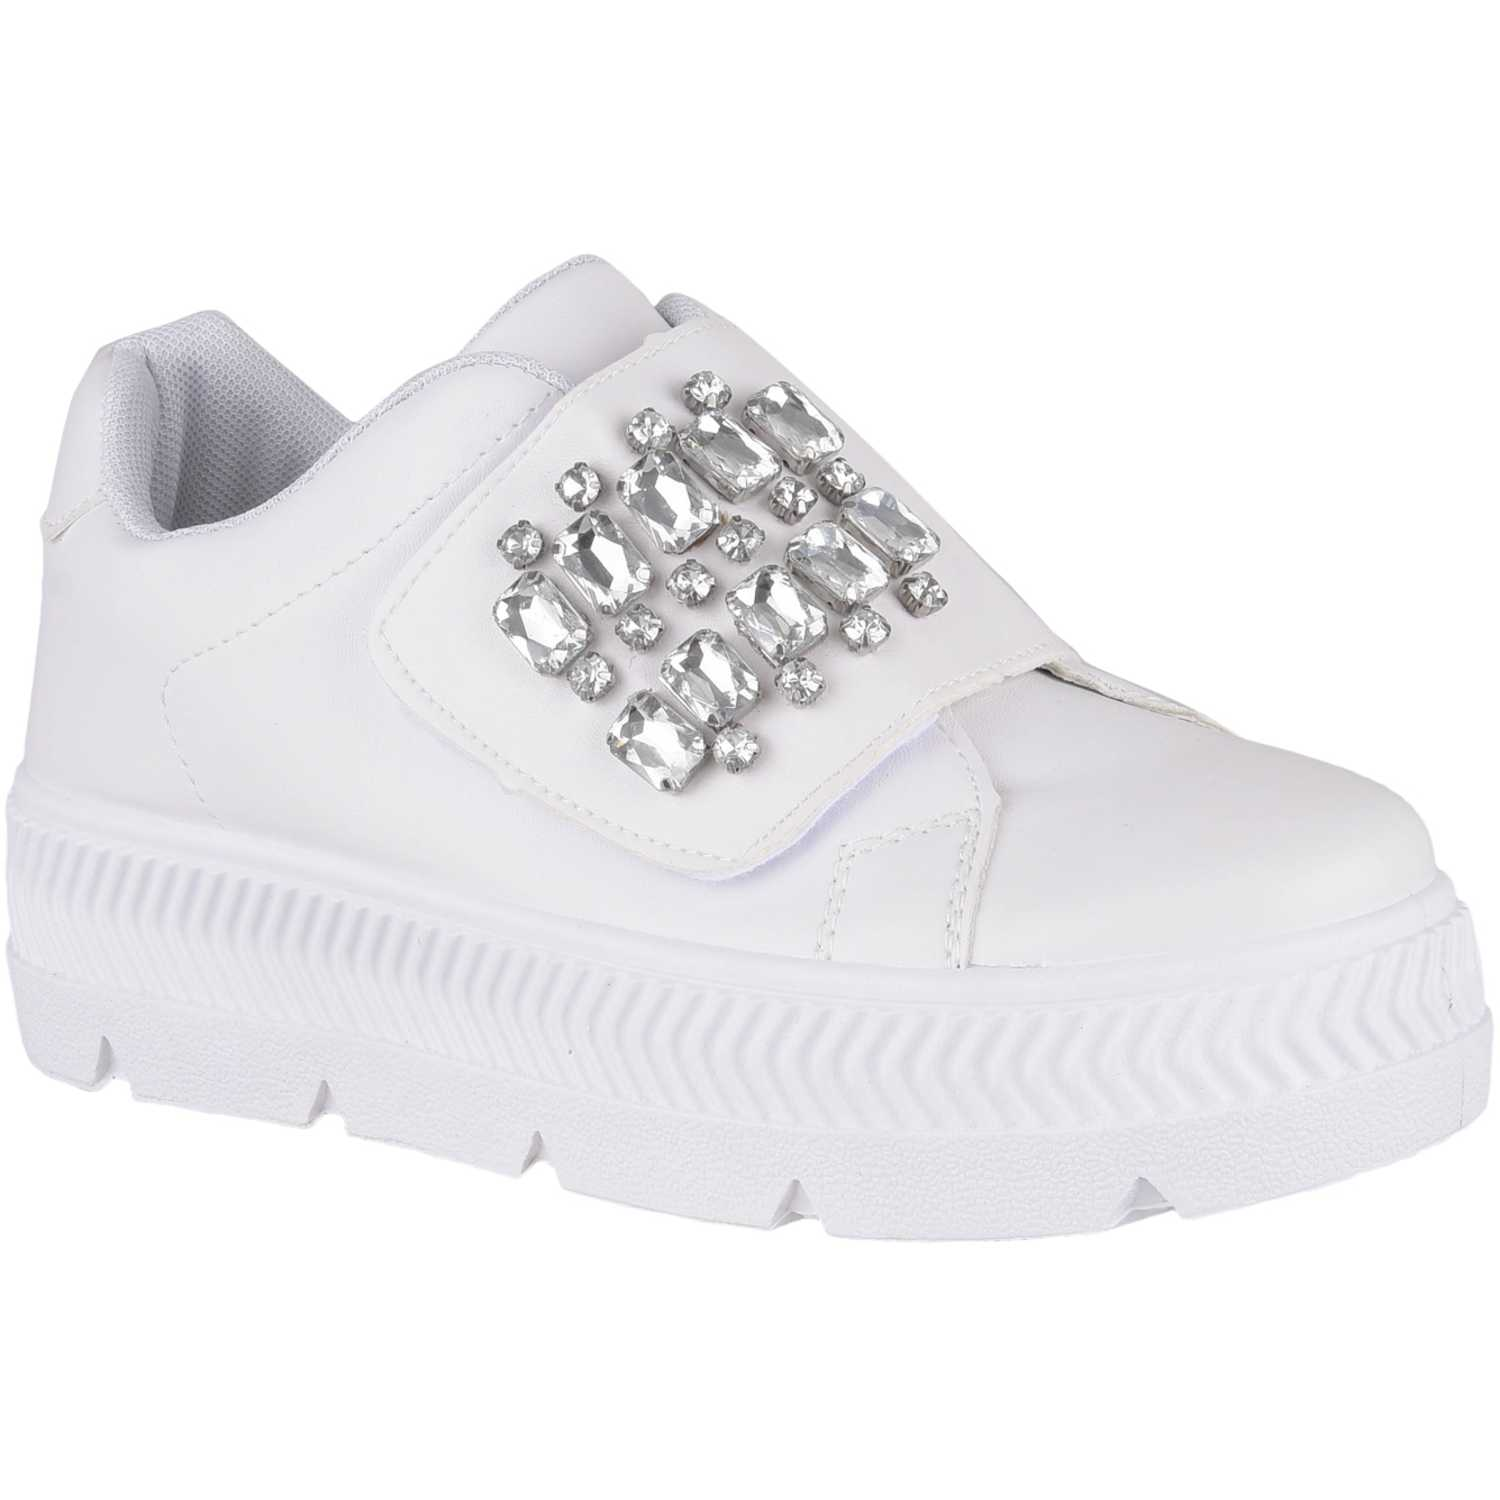 Just4u zc 7c12 Blanco Zapatillas Fashion